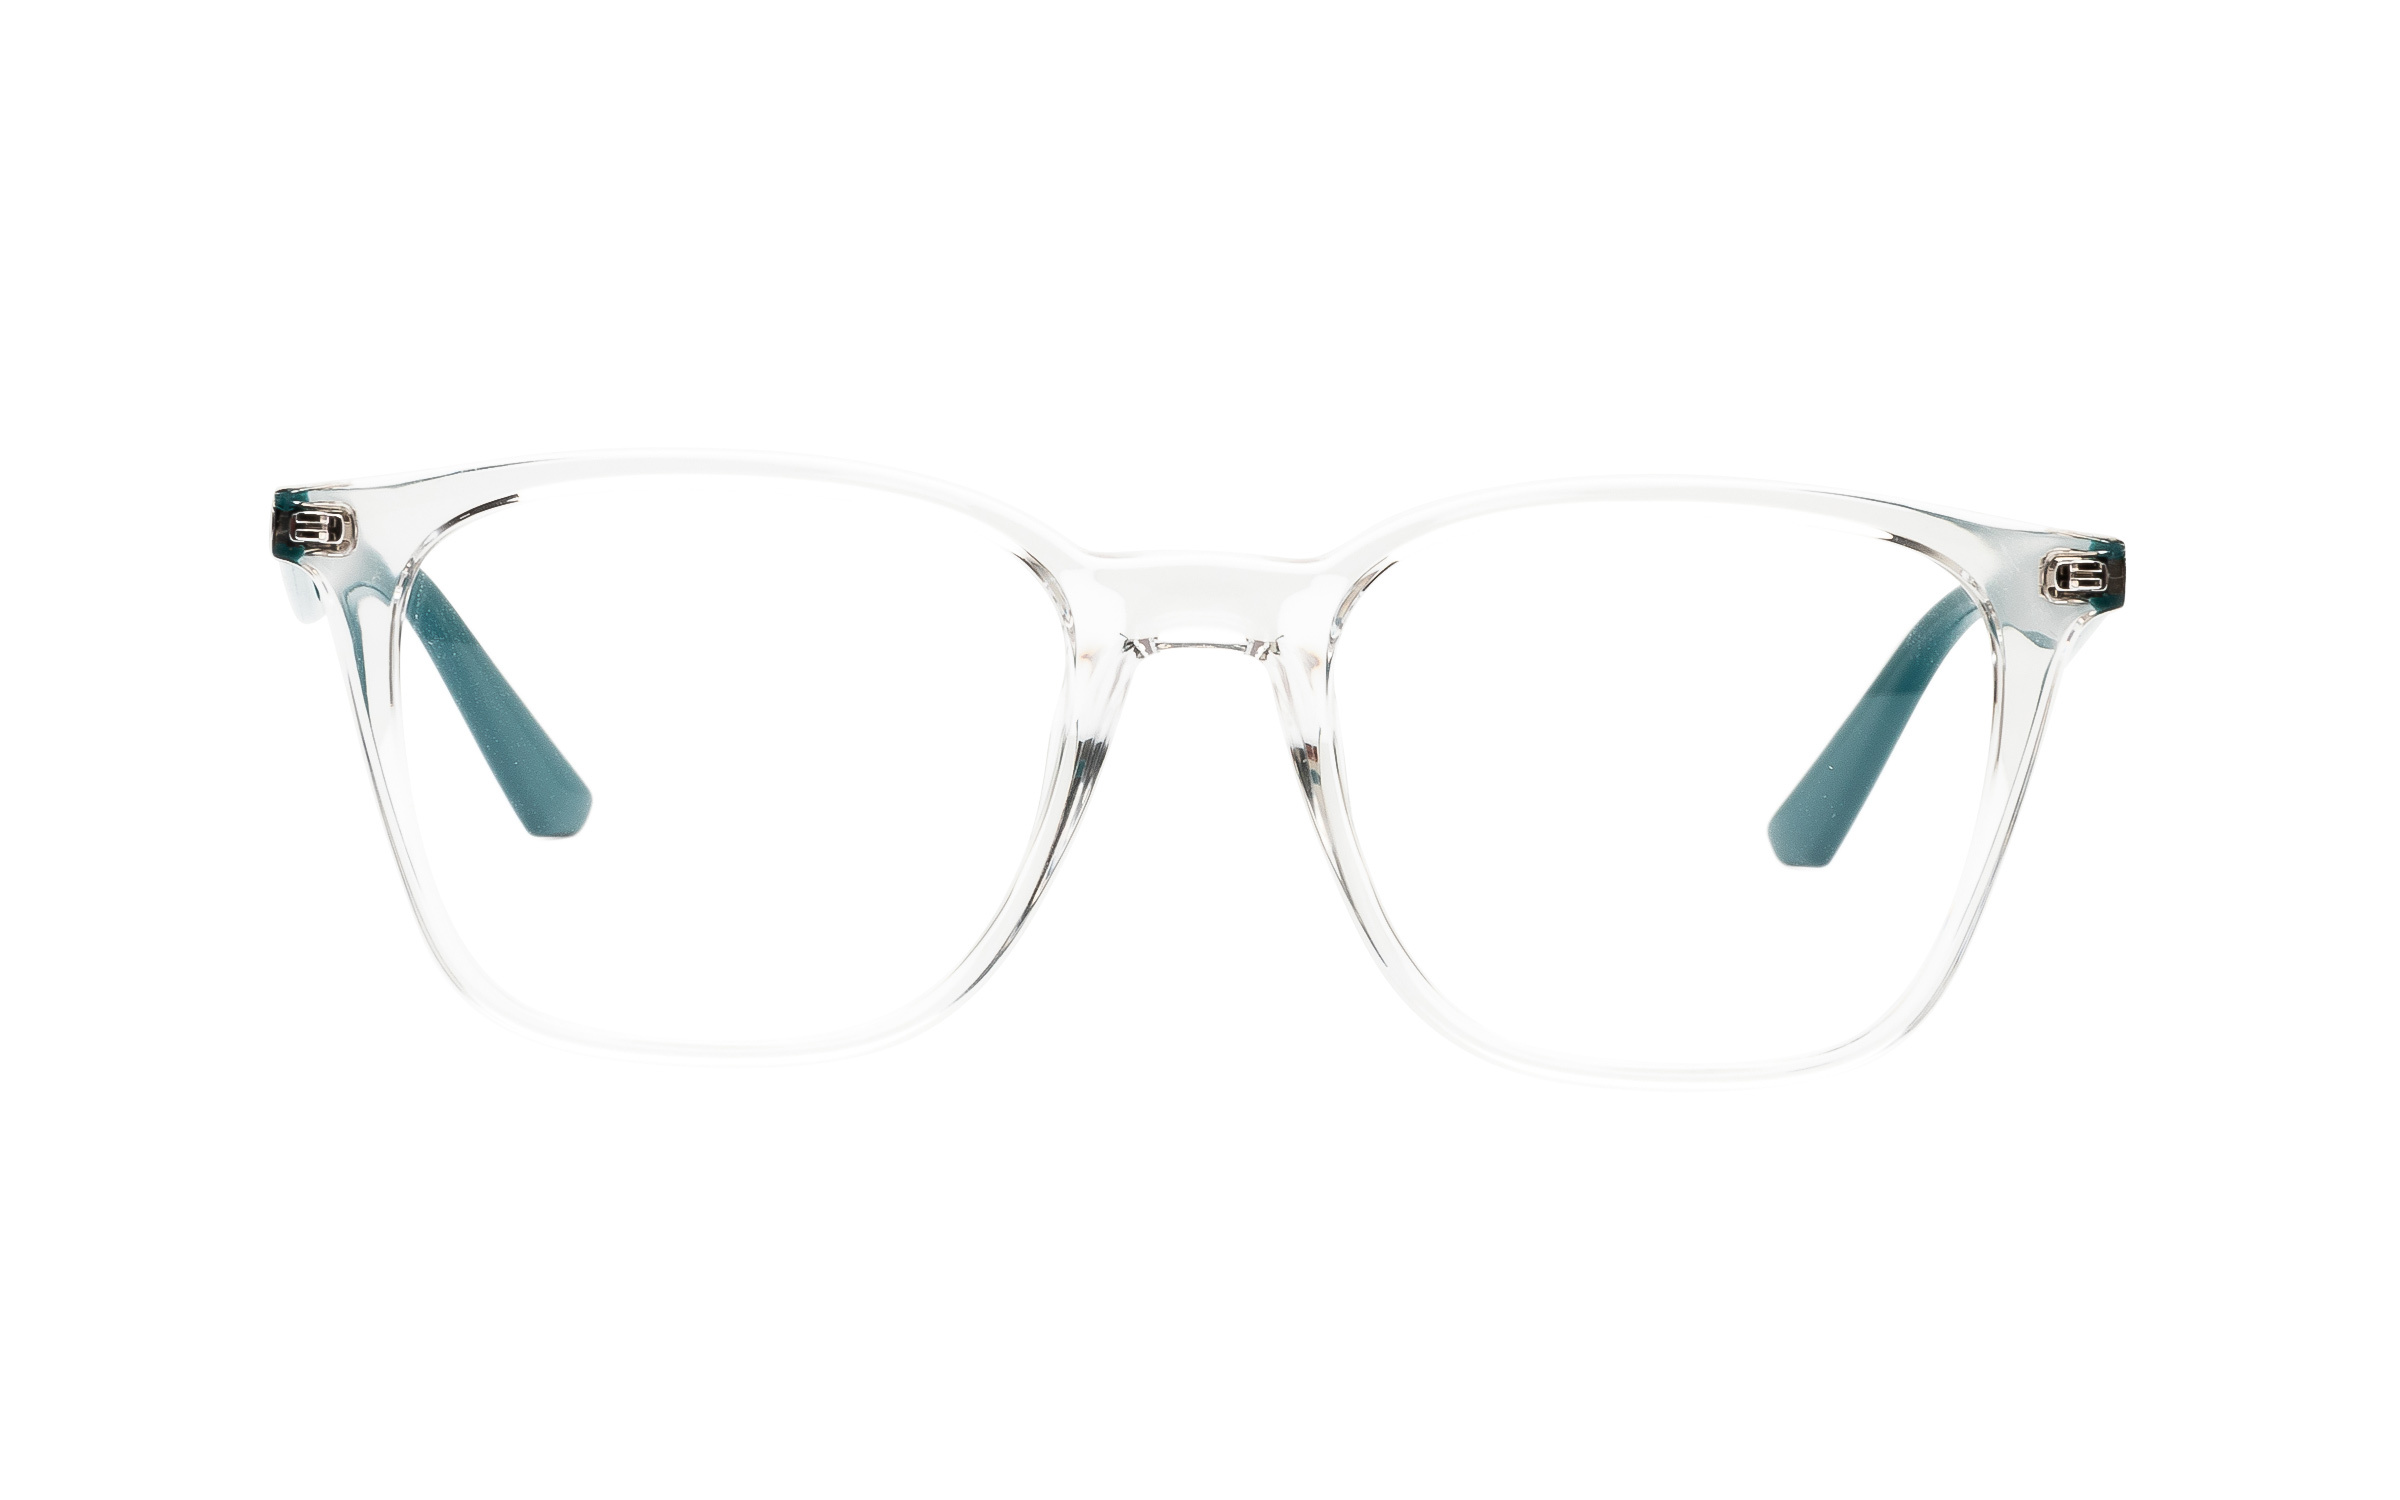 Luxottica Ray-Ban RX7177F 5994 (51) Eyeglasses and Frame in Clear - Online Coastal